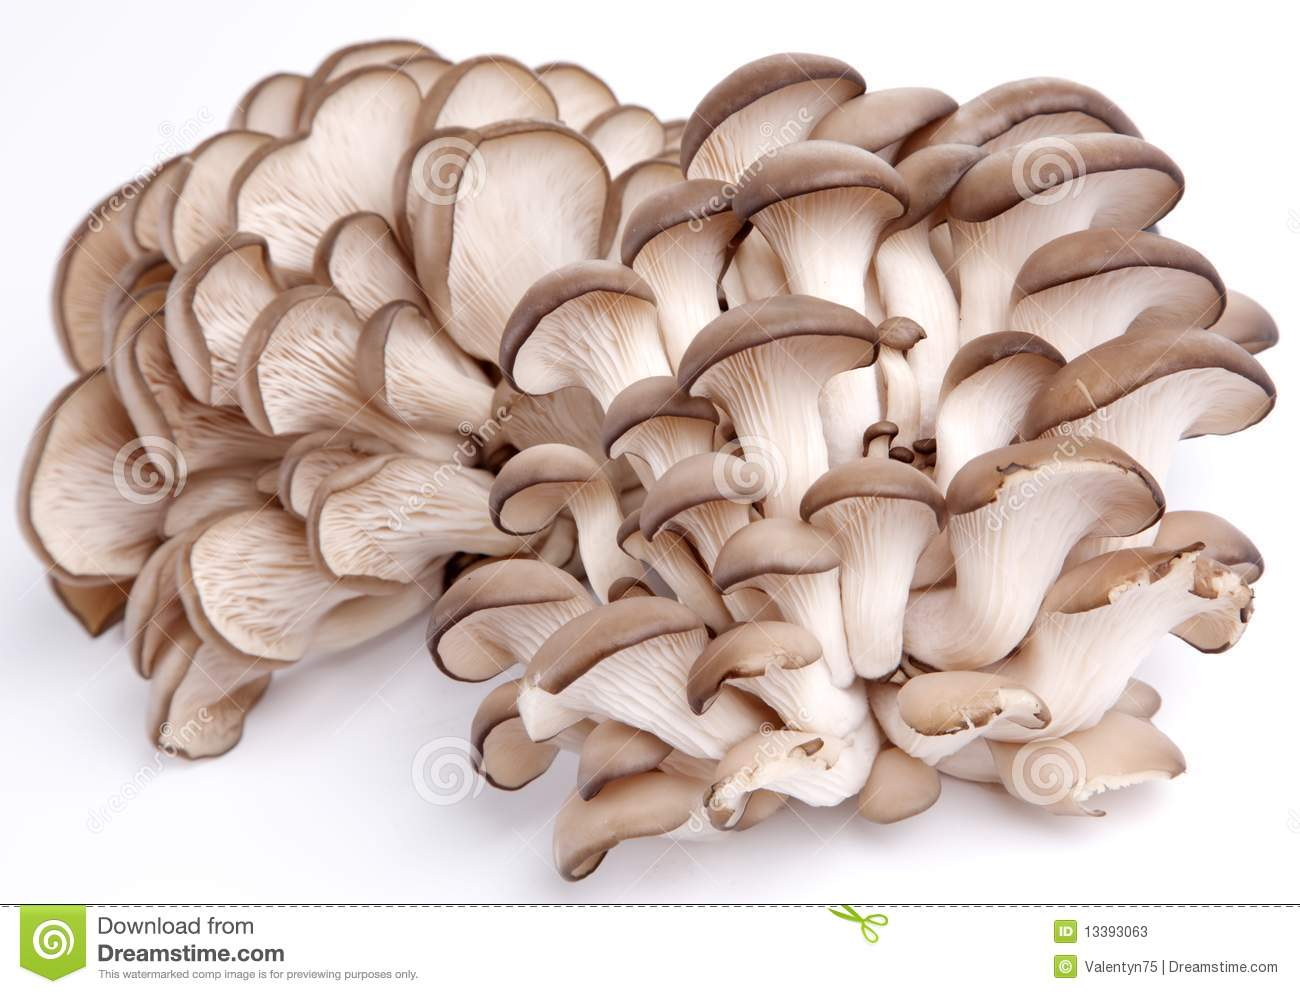 how to sell mushrooms to restaurants